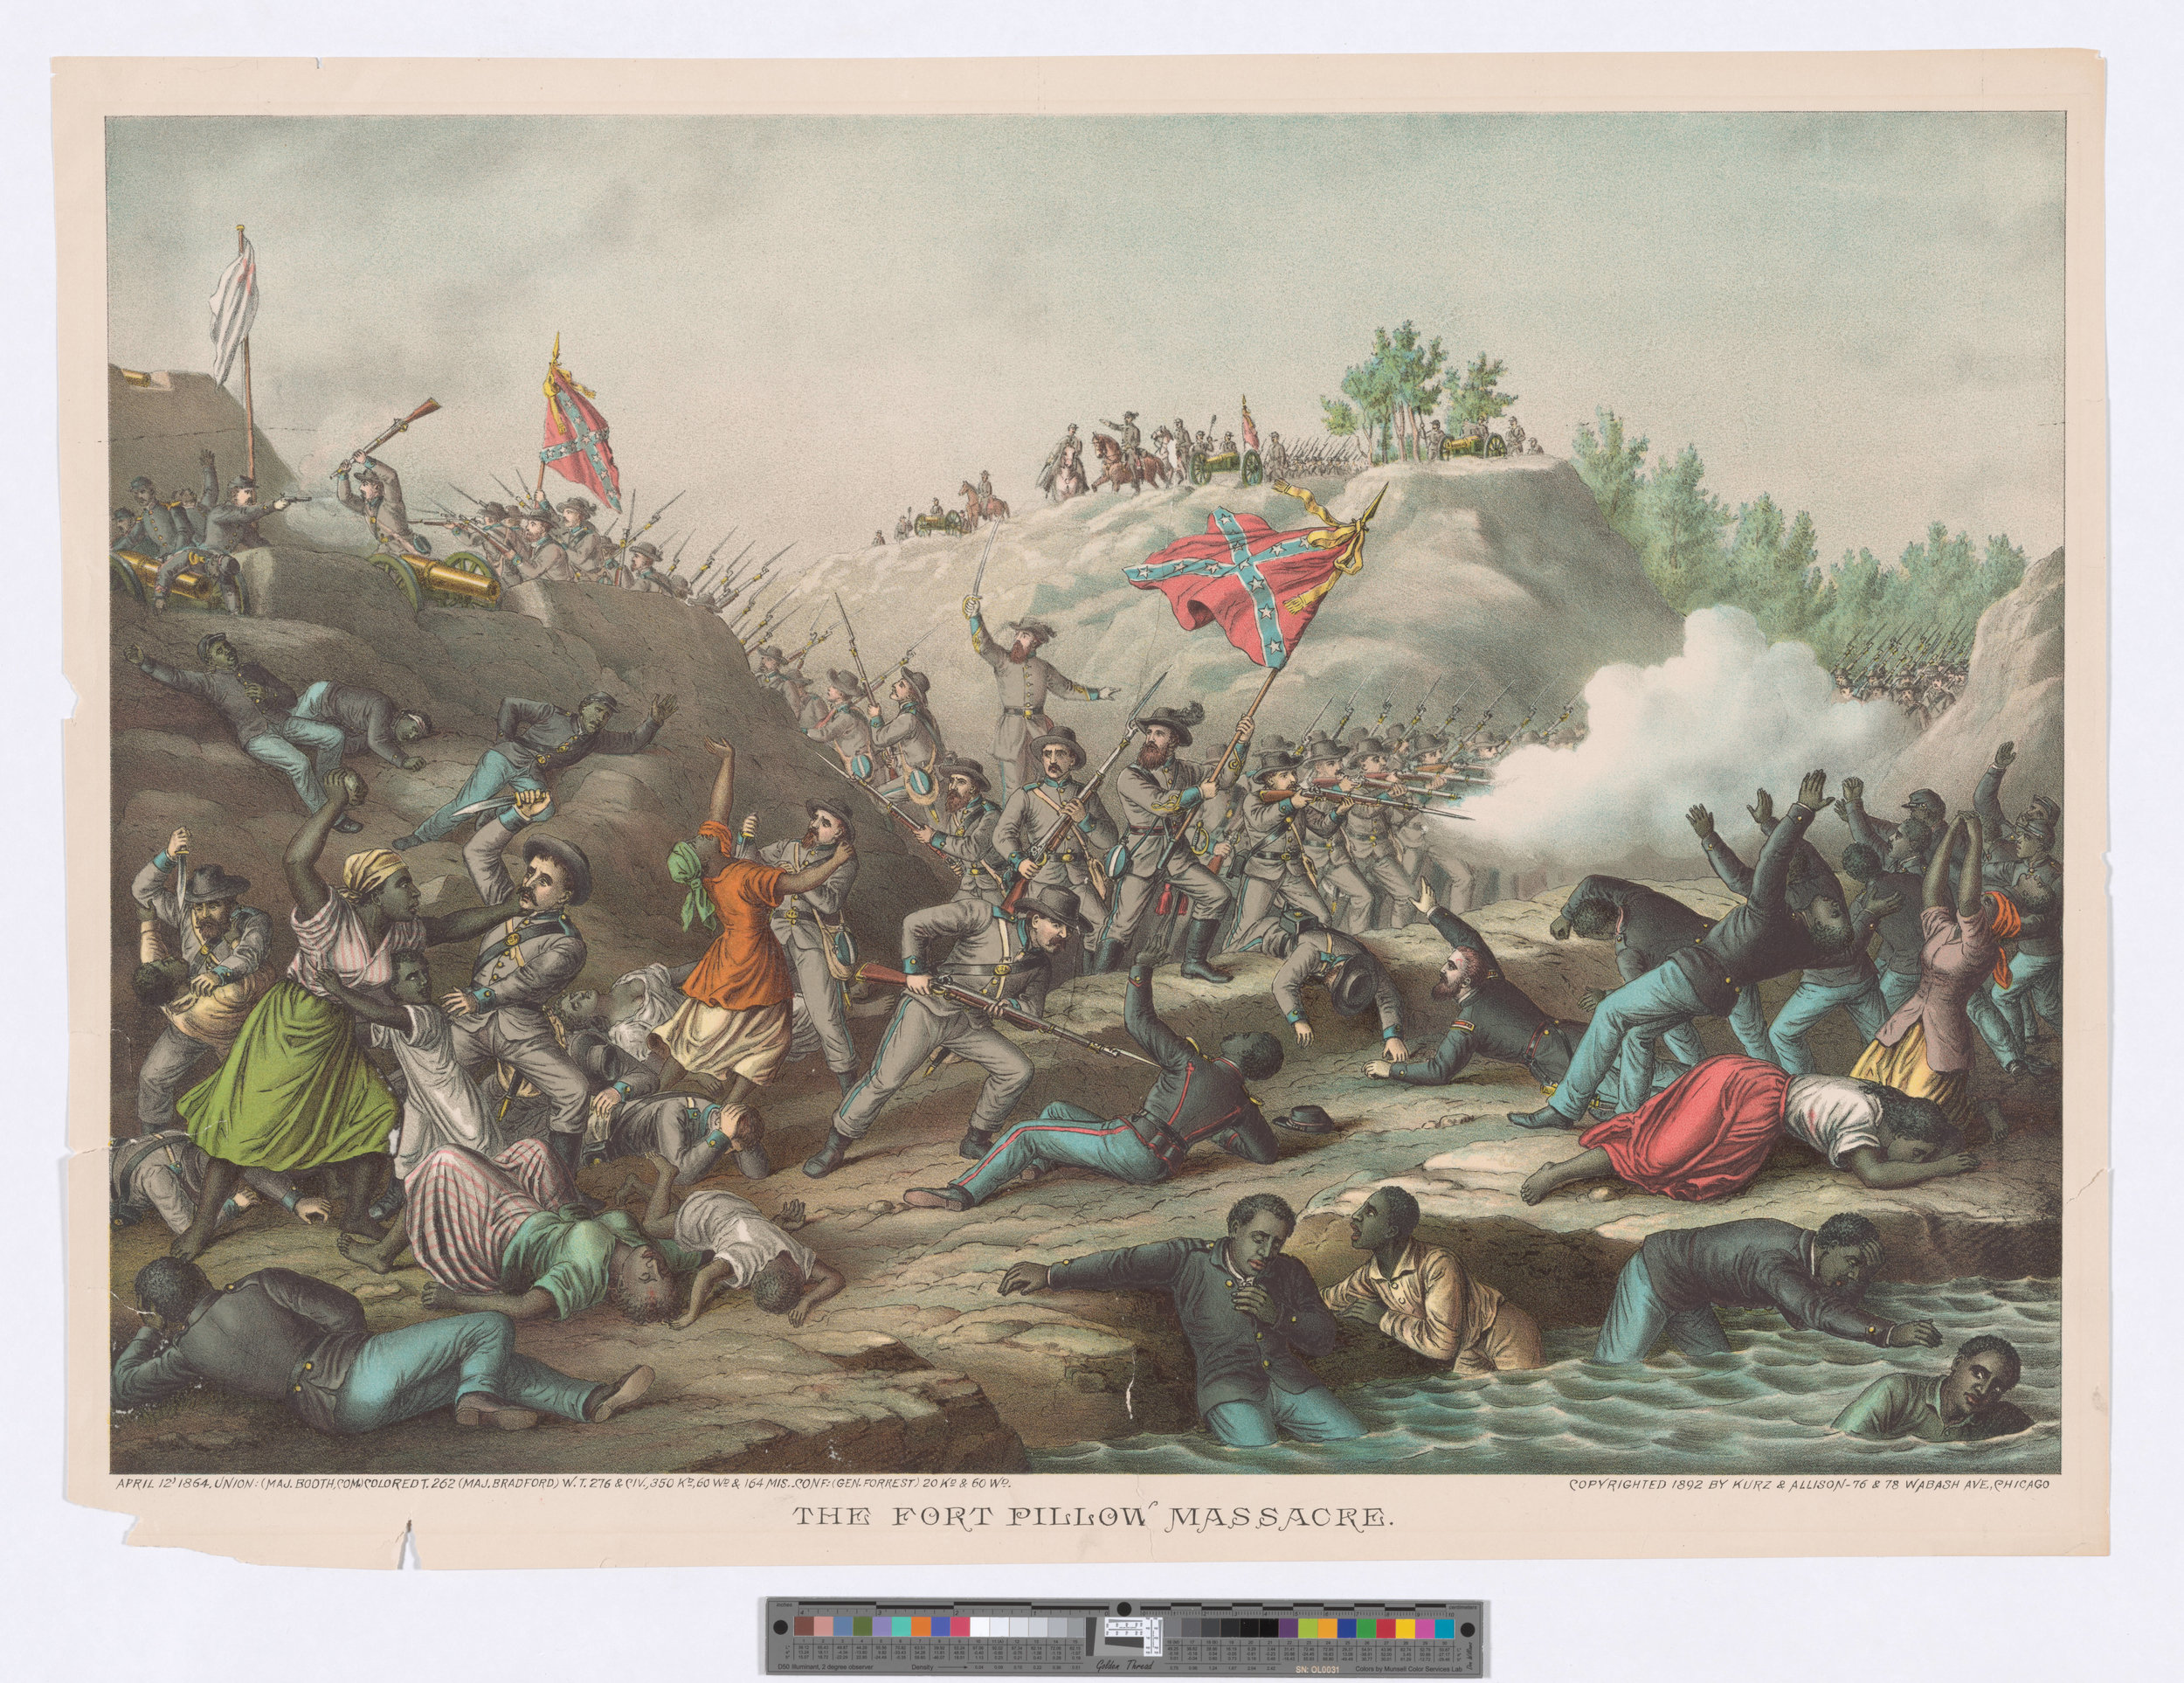 The Fort Pillow massacre was one of the darkest and most controversial moments of the war. Though the African American Union soldiers surrendered, the Confederate commander thought he'd make a jolly point and let his soldiers kill them all. Horrifying. - The Jay T. Last Collection of Graphic Arts and Social History, Huntington Digital Library.